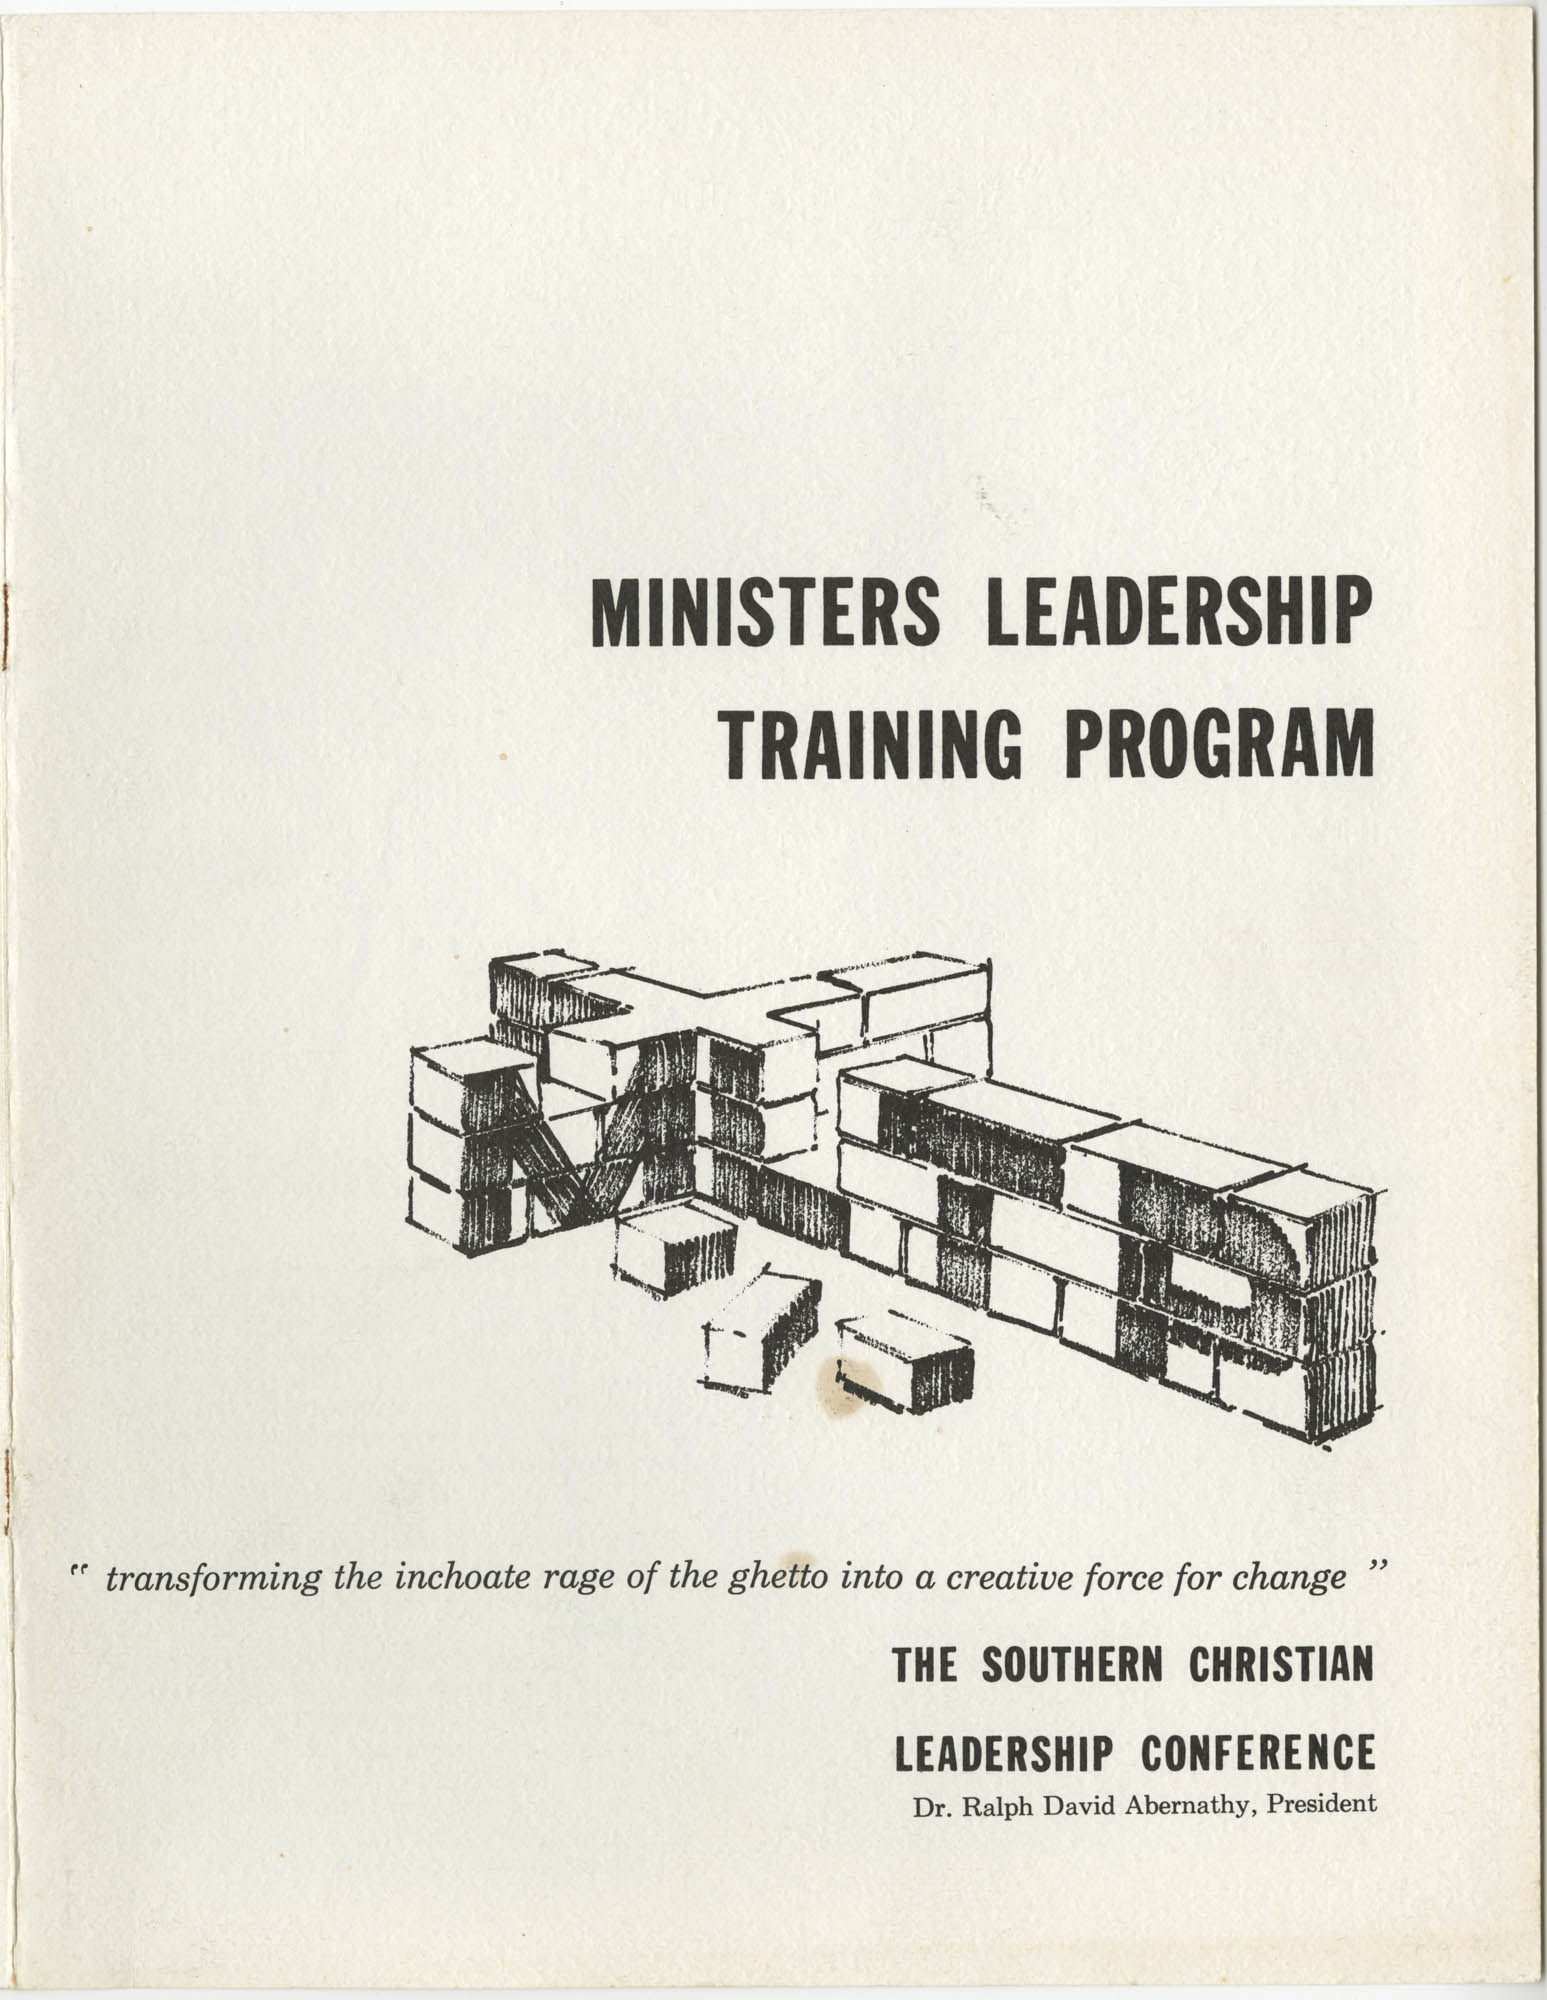 Ministers Leadership Training Program